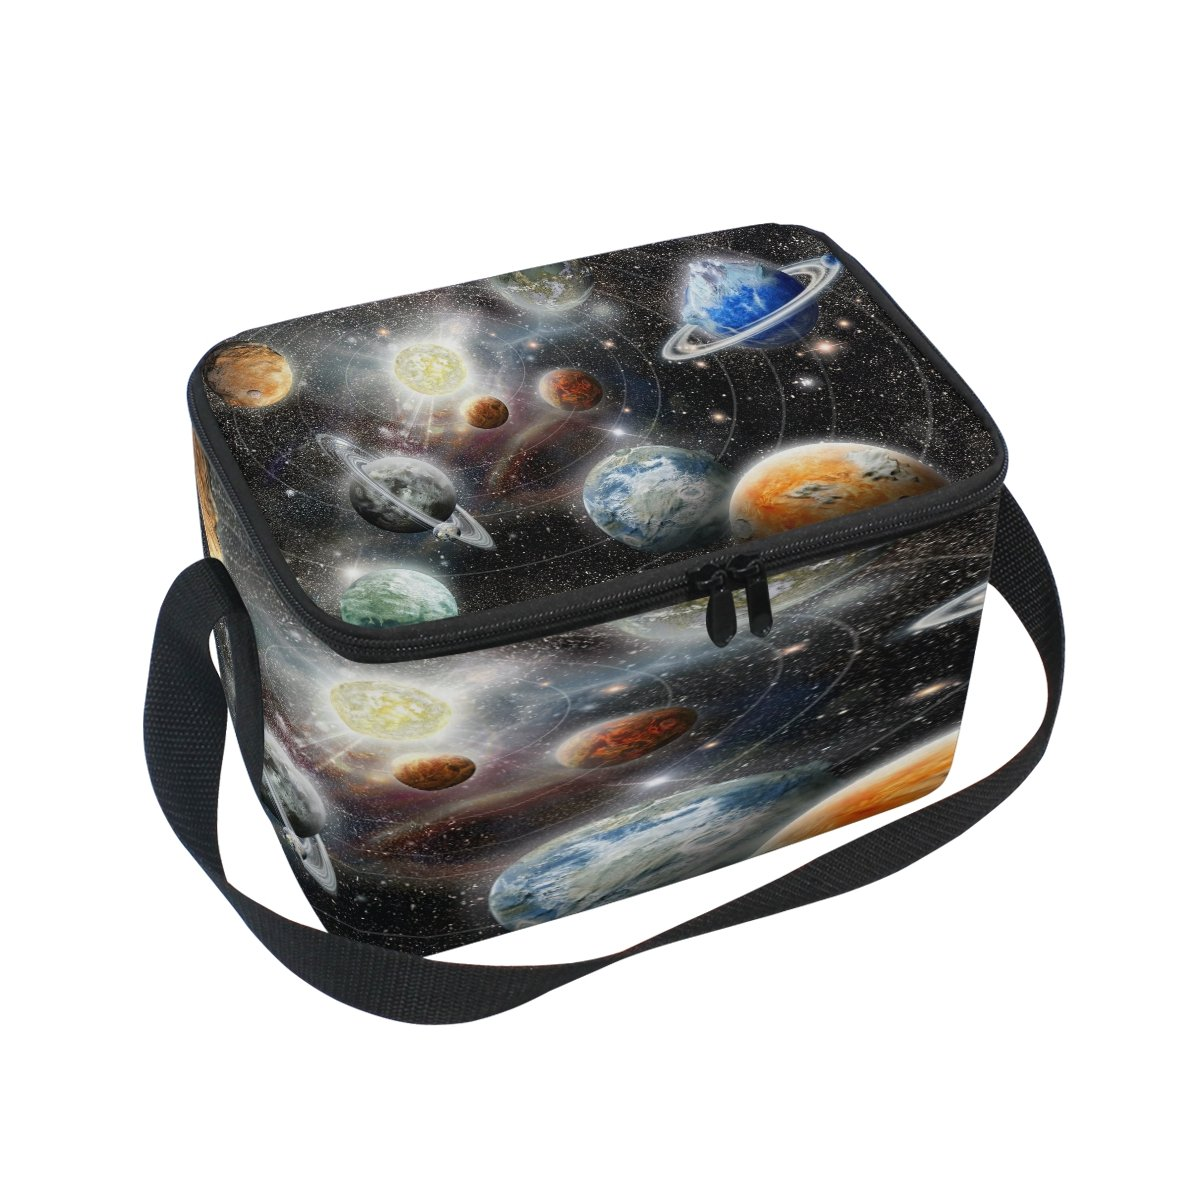 Use4 Space Solar System Universe Star Insulated Lunch Bag Tote Bag Cooler Lunchbox for Picnic School Women Men Kids